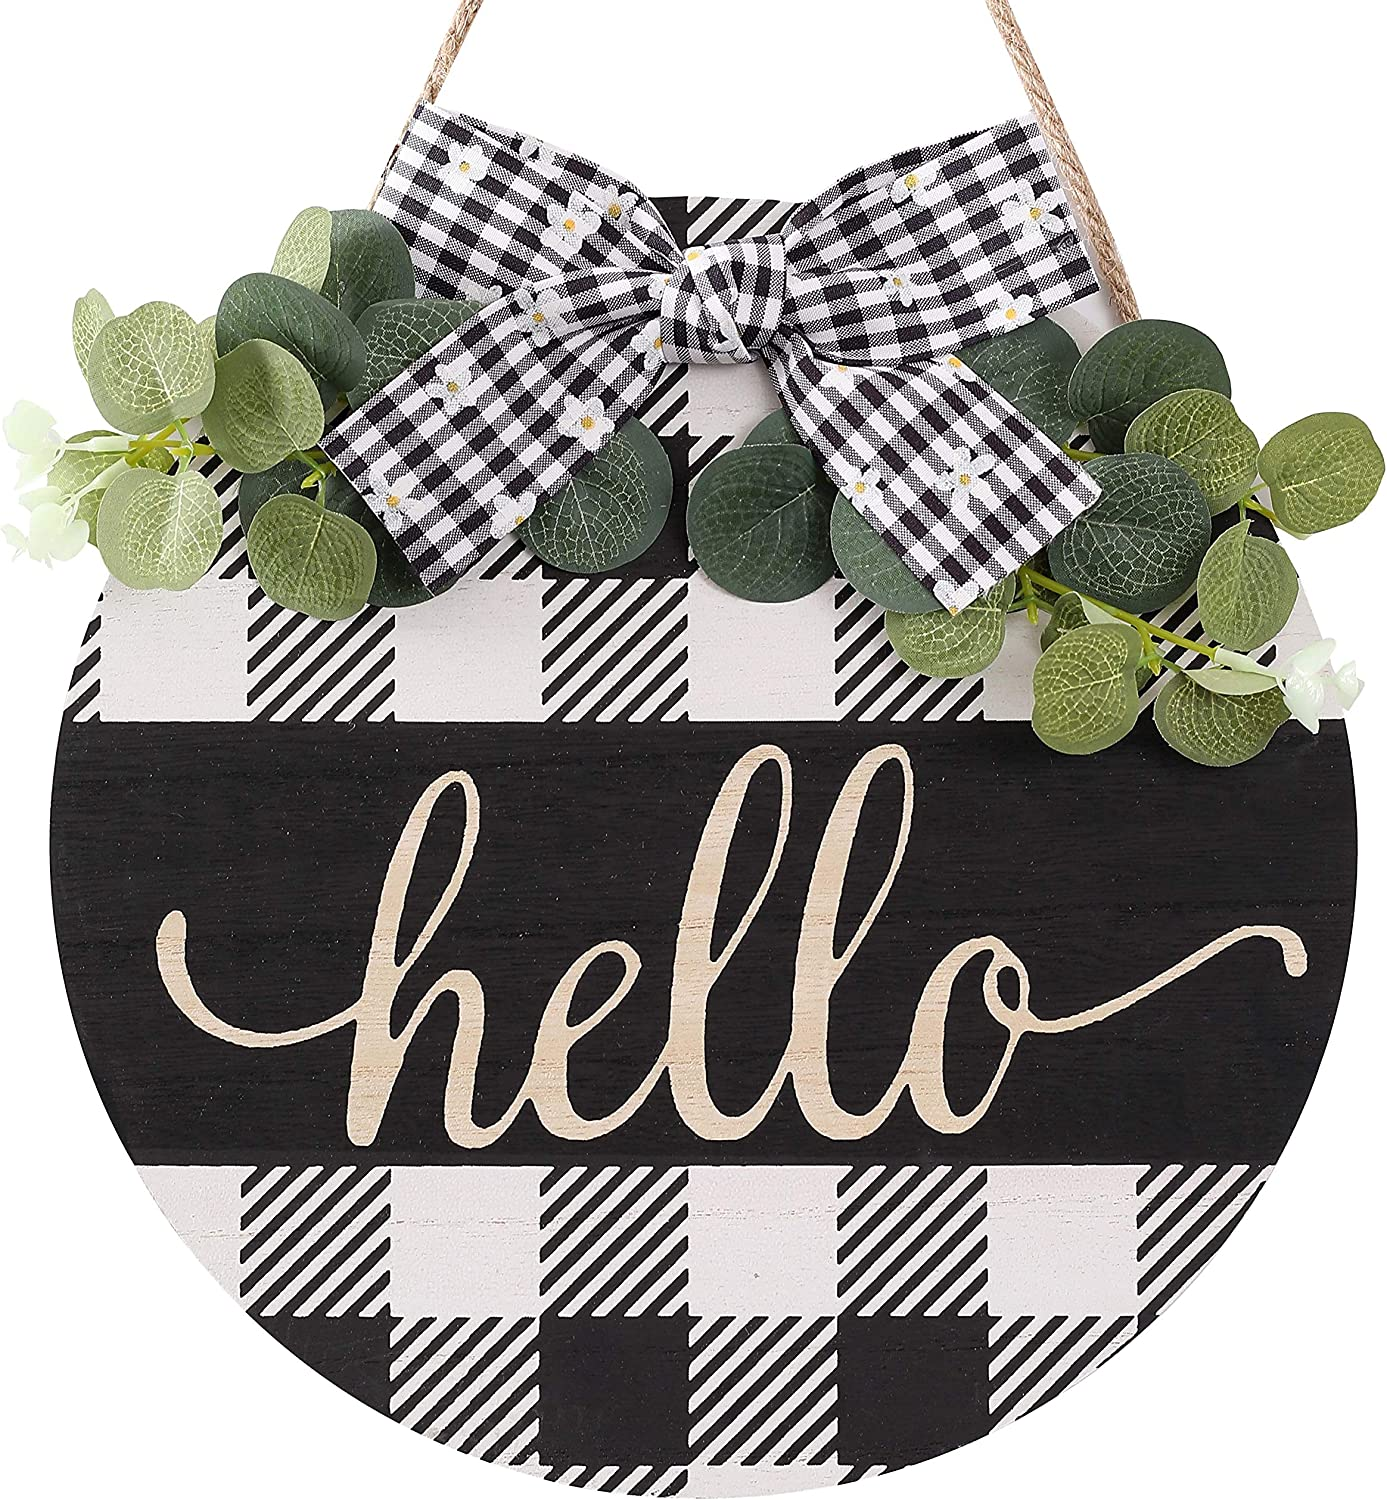 CYNOSA Welcome Hello Sign Porch for Front Door Decor, Black and White Bufflo Plaid Rustic Wooden Door Hangers Wreath Decoration Hanging Vertical Sign Farmhouse Outdoor Wall Decor (Black White)